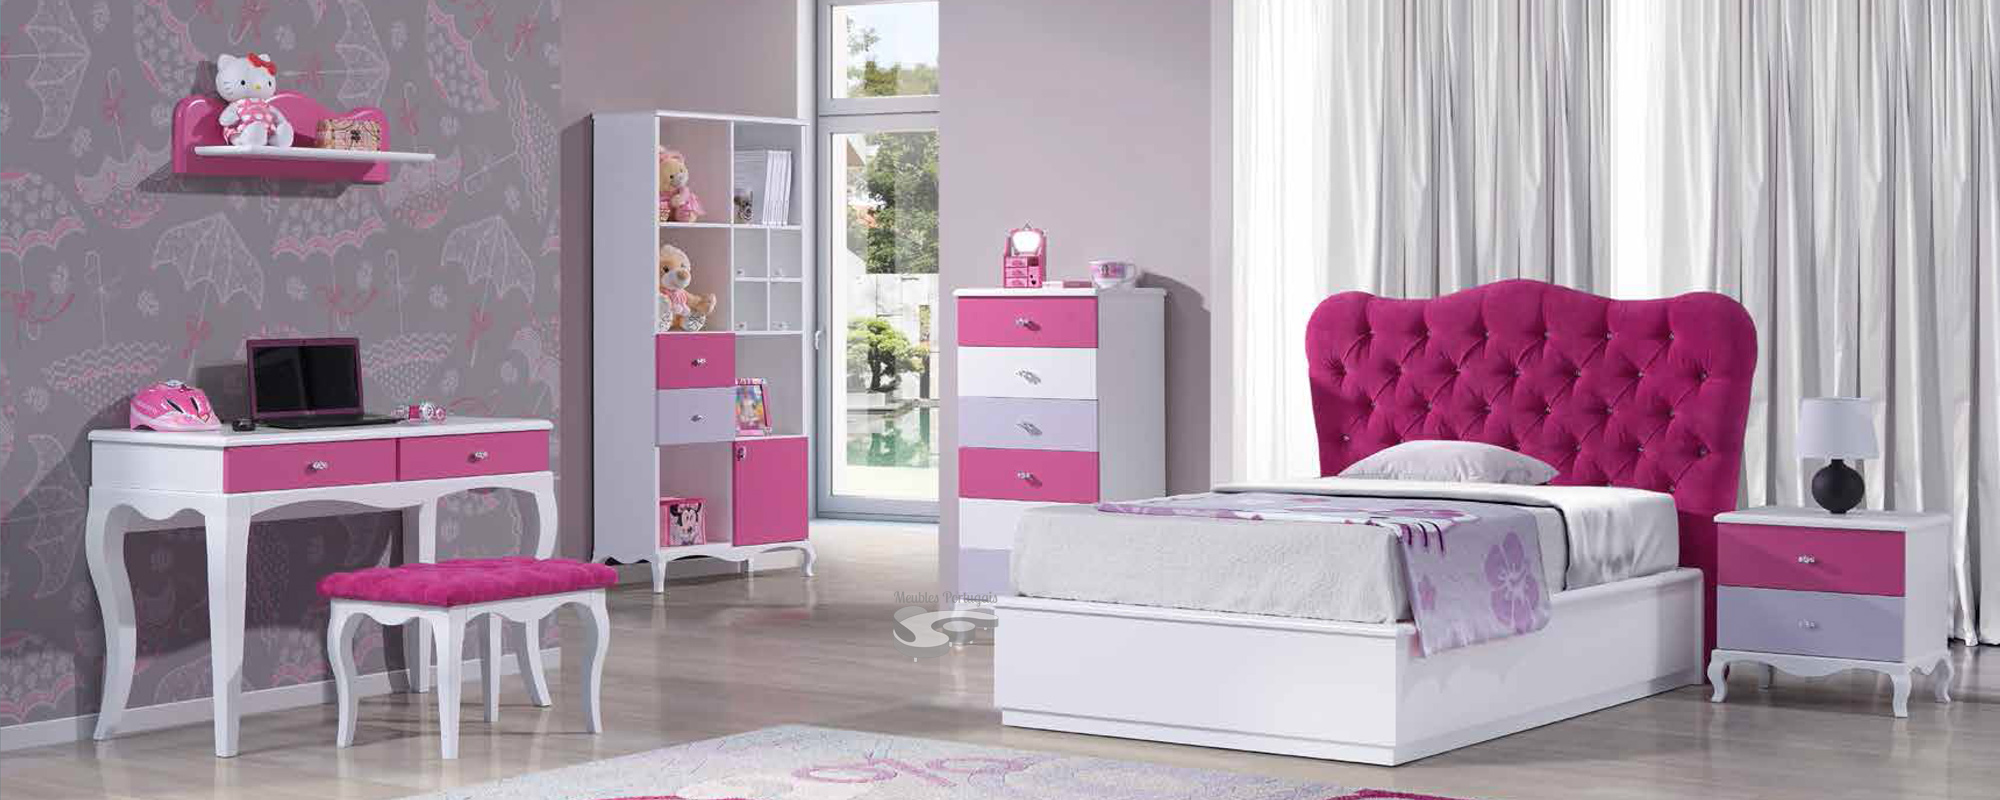 Meubles Portugais Cool Cheap Meubles Portugais Chambre Enfant Design With